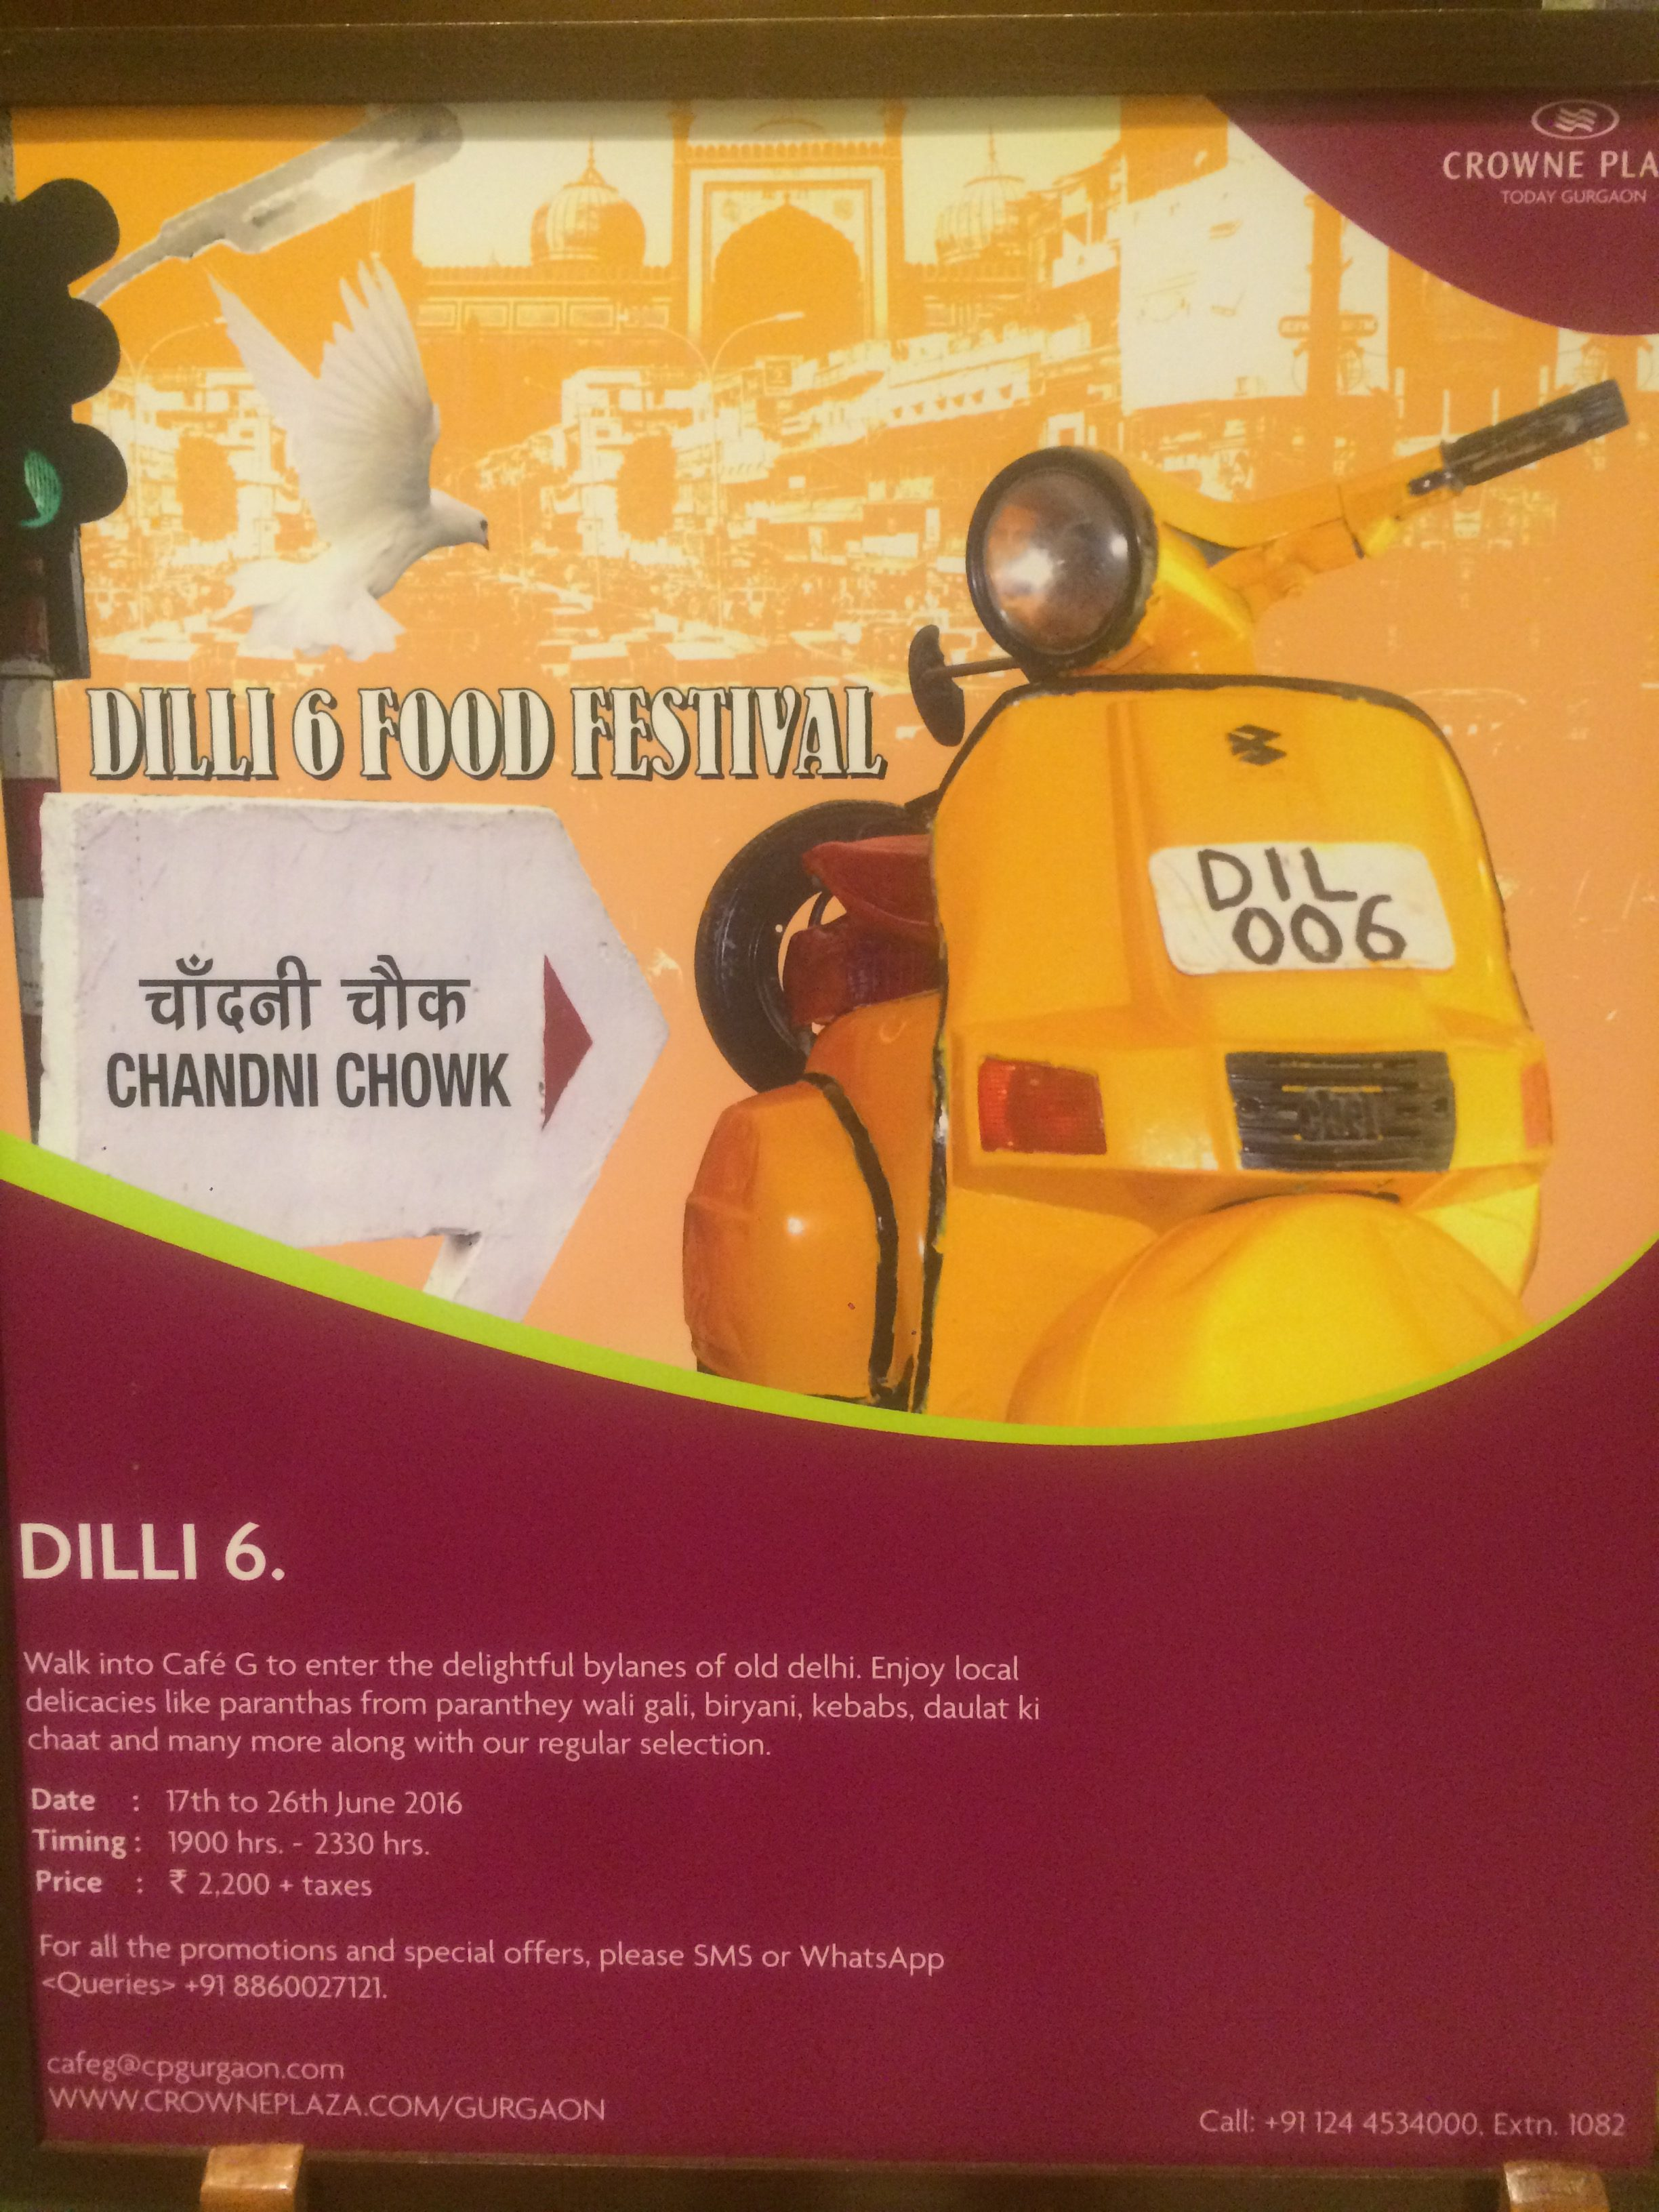 Dilli-6 Food Festival at Cafe G, Crowne Plaza Today Gurgaon